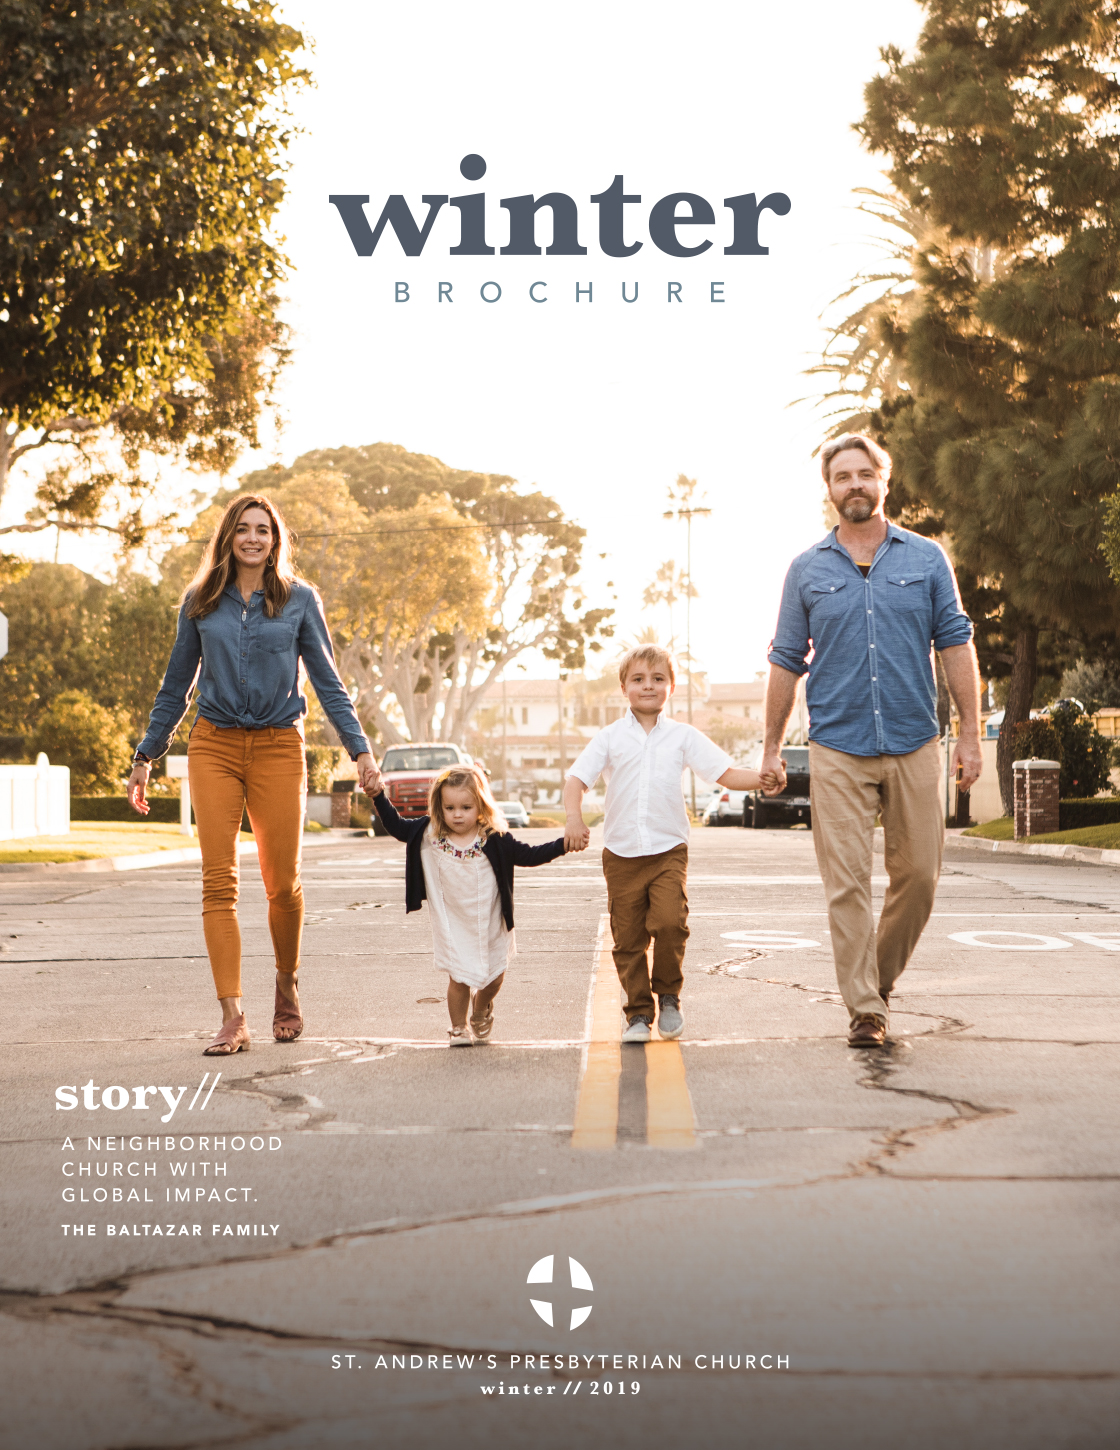 winter-brochure-2019.jpg